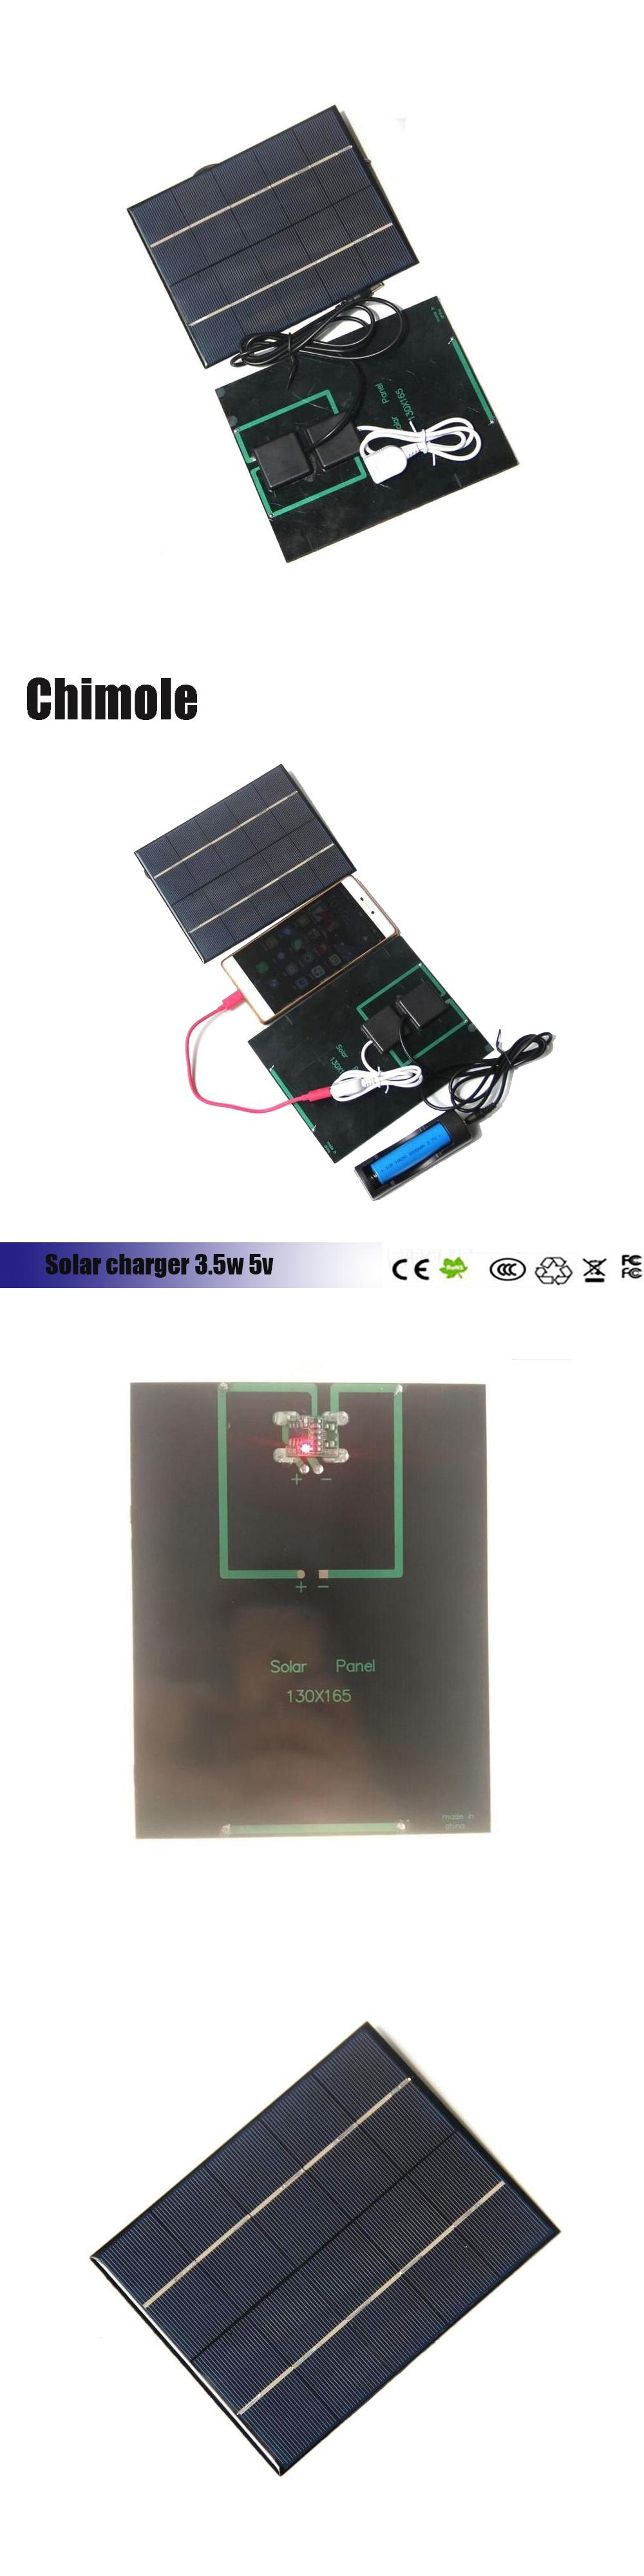 chimole 3 5w 5v solar panel charging for 18650 rechargeable battery